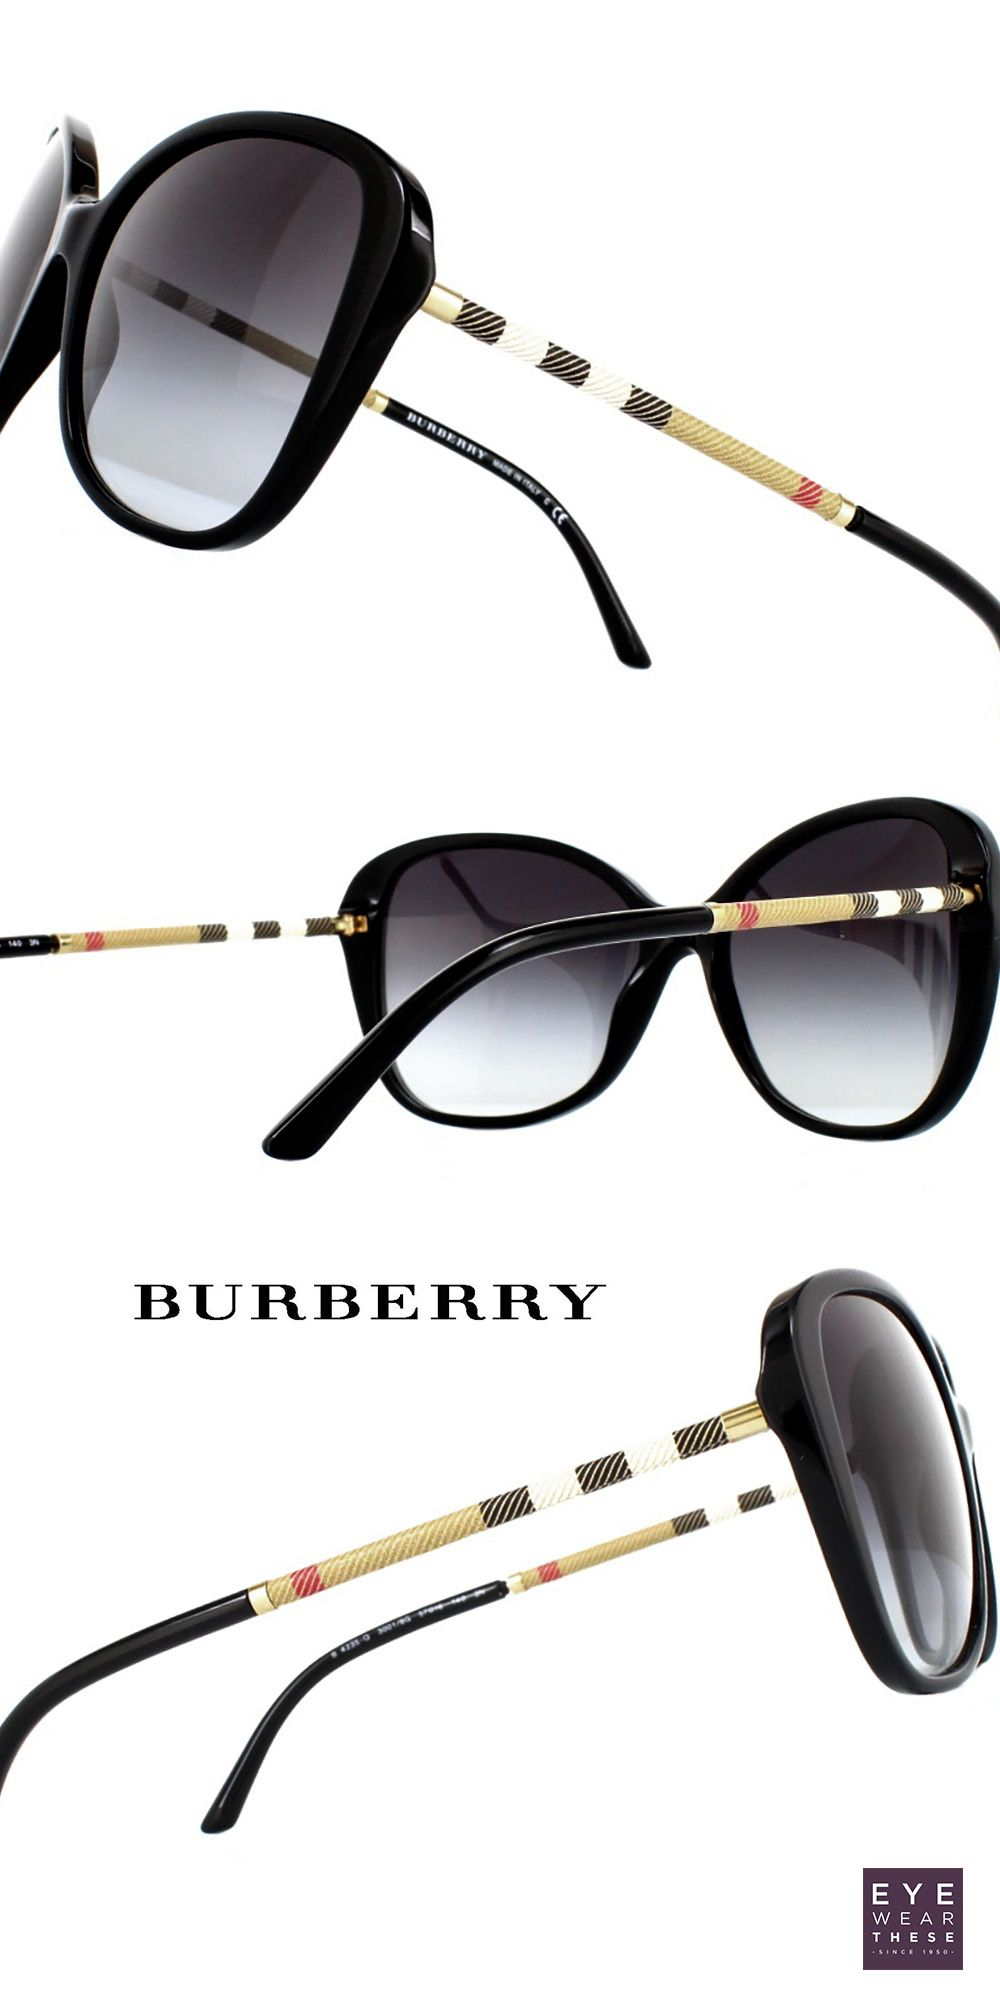 728797fd400f Premium Burberry sunglasses for women with with beautifully wrapped leather  temples in the house check design #Burberry #fashion